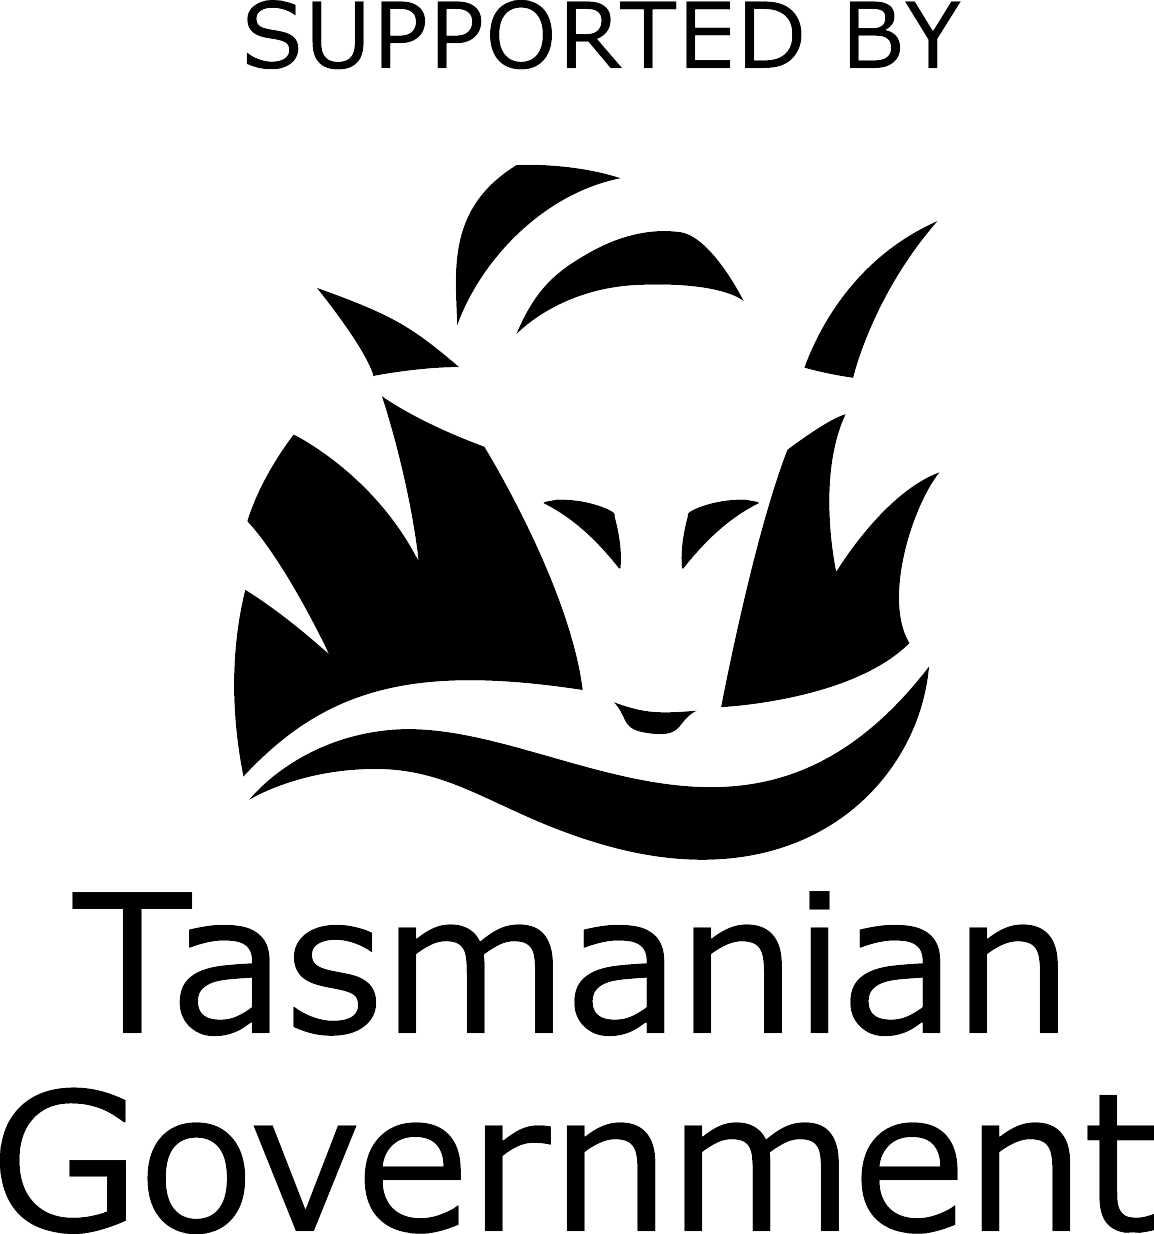 supported by tas govt logo.png